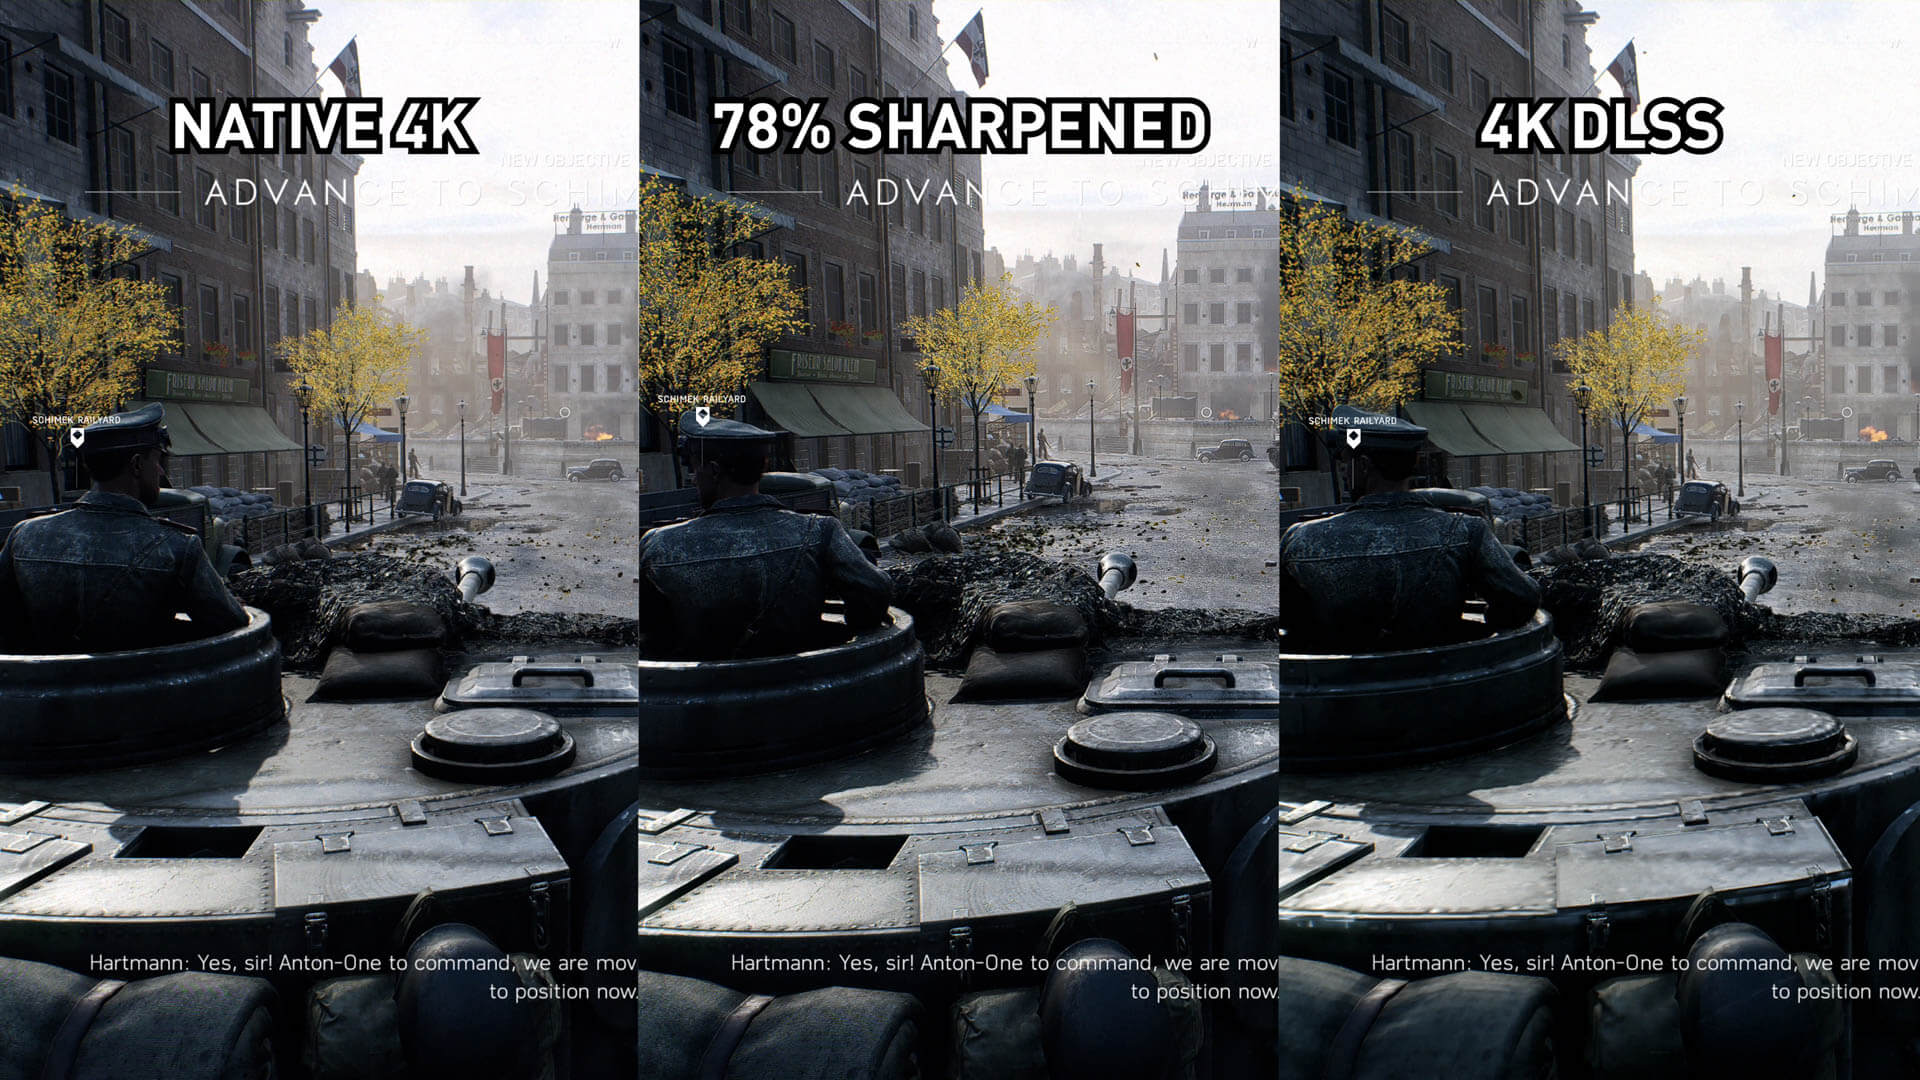 Testing AMD's new Radeon Image Sharpening: Is It Better than